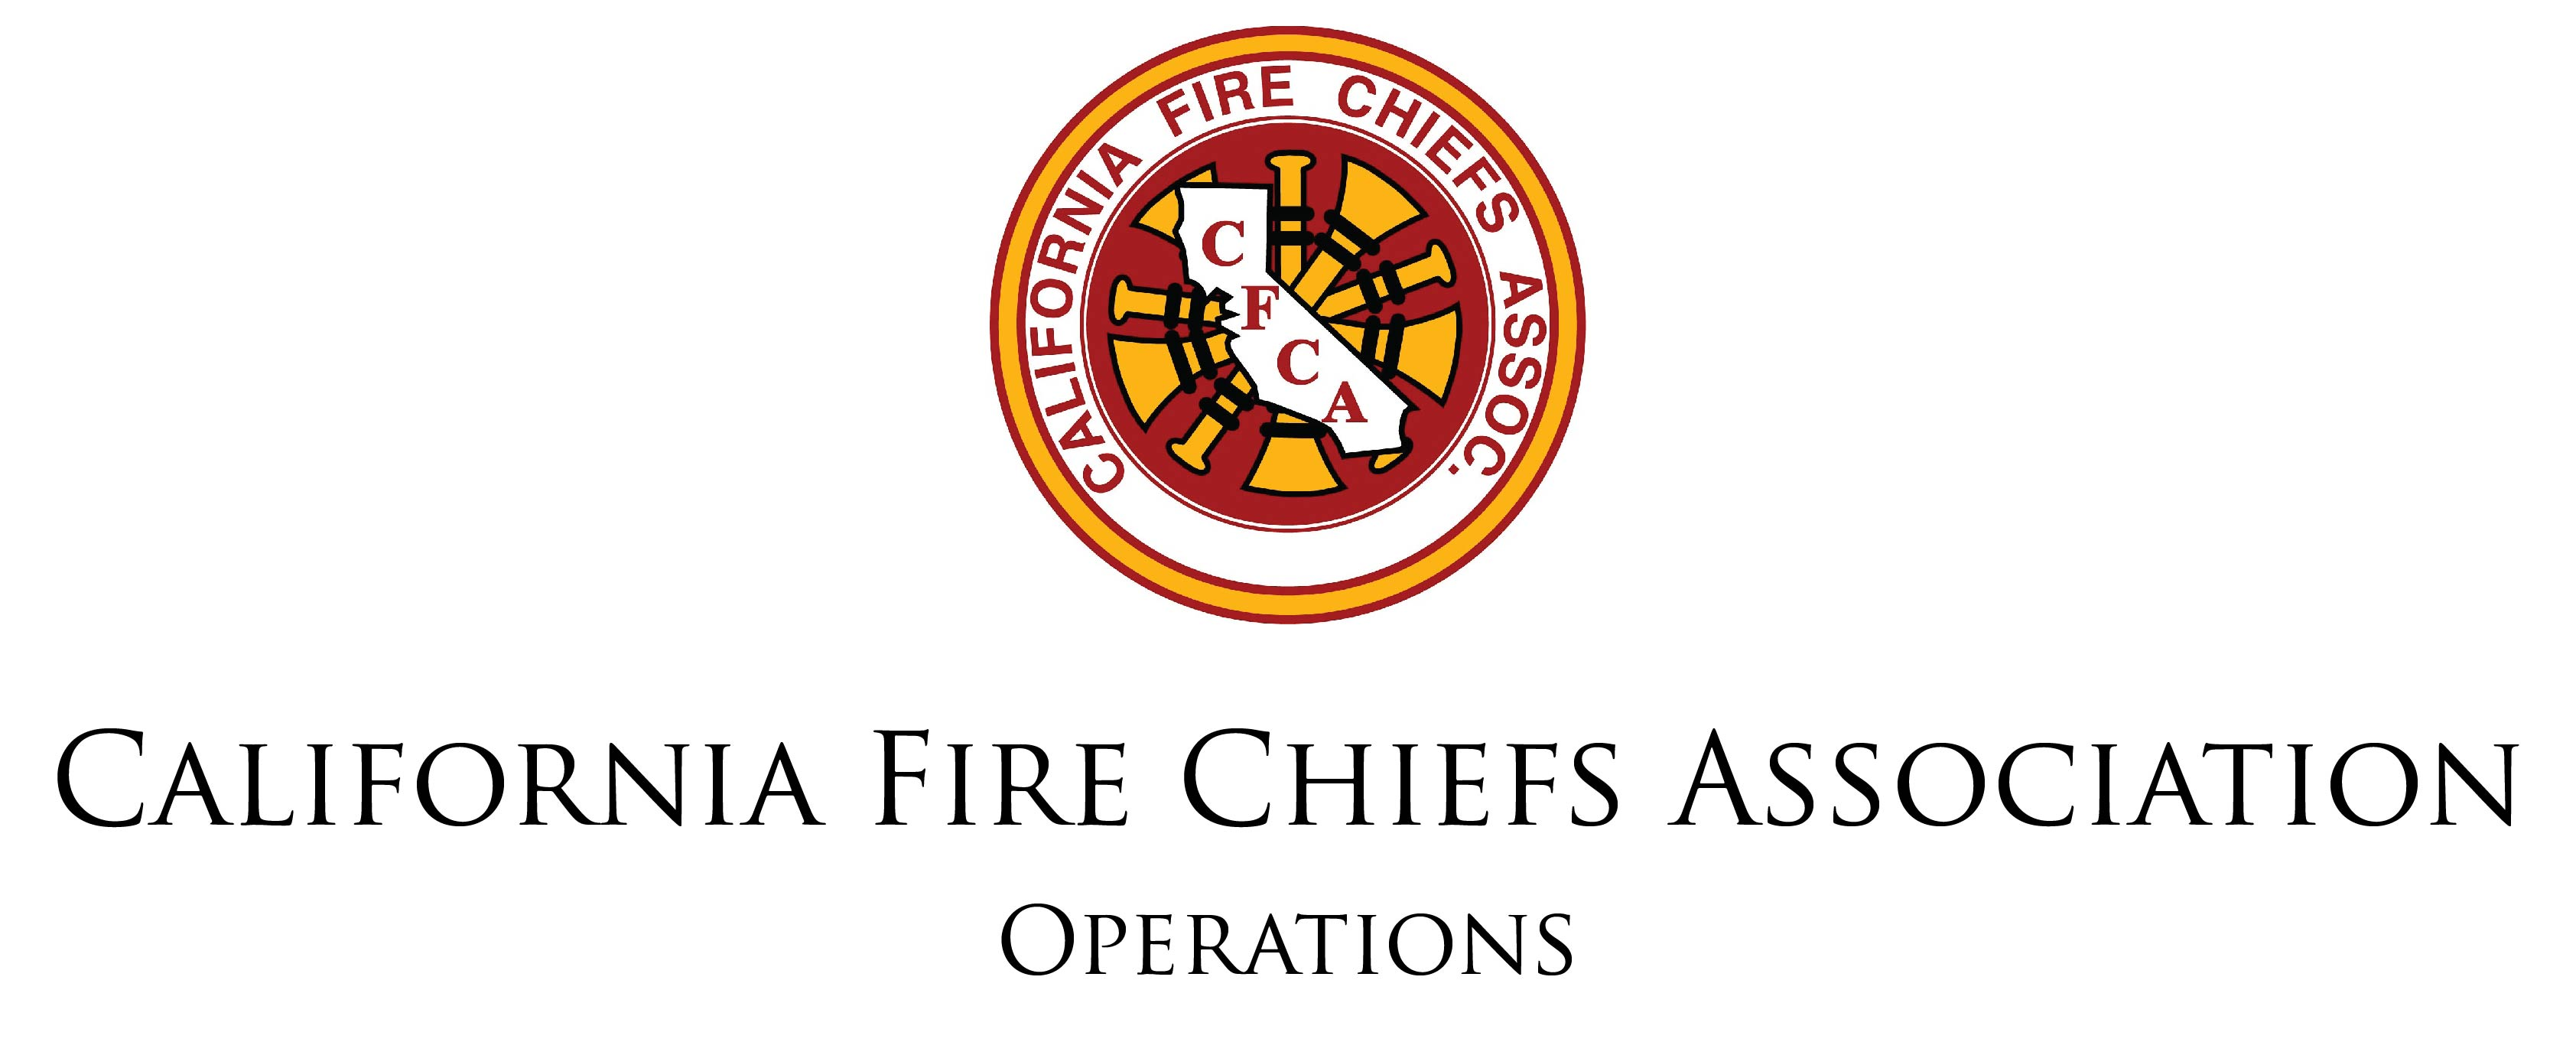 California Fire Chiefs Association - Operations